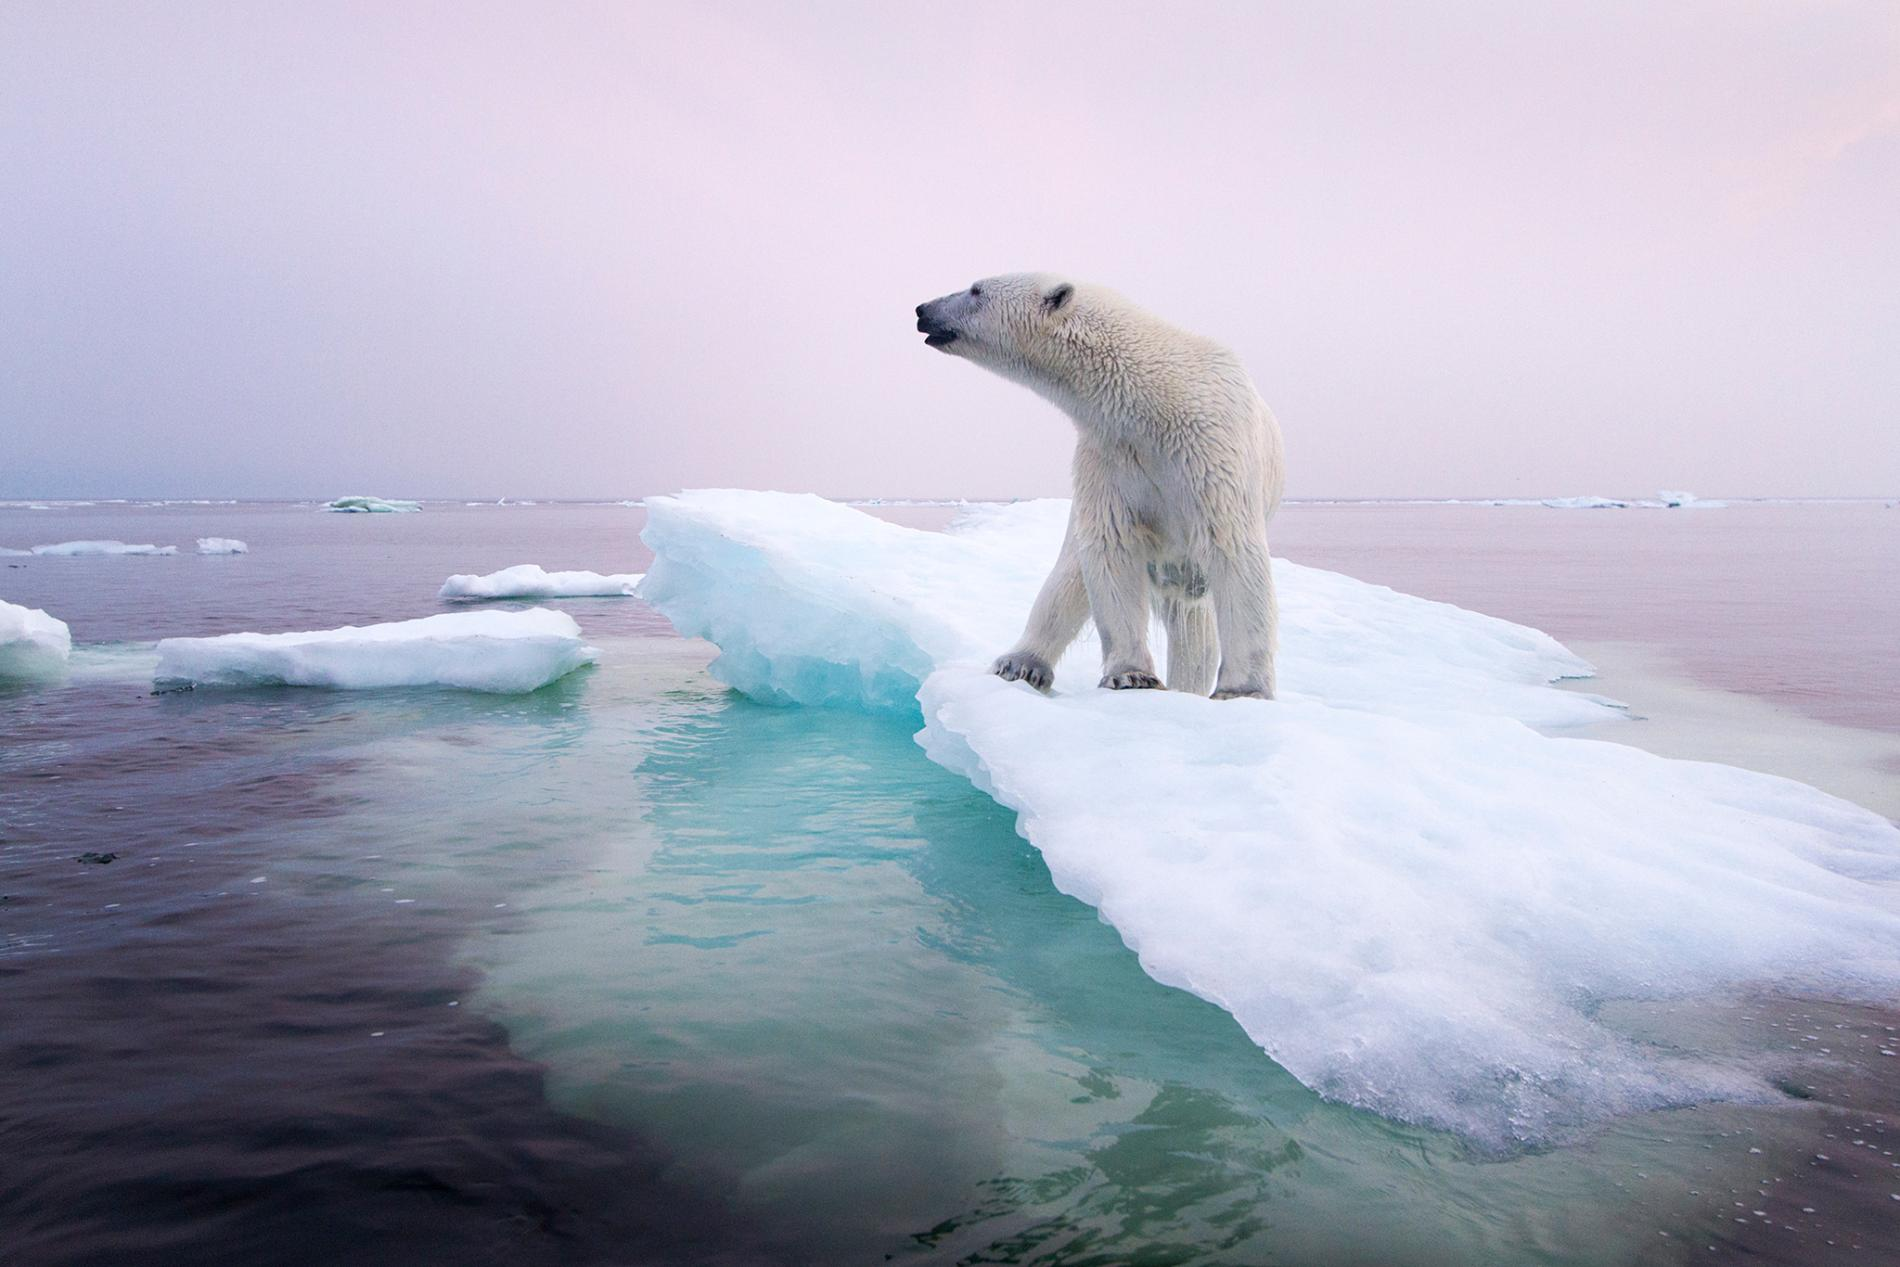 This is how we can all help fight climate change today